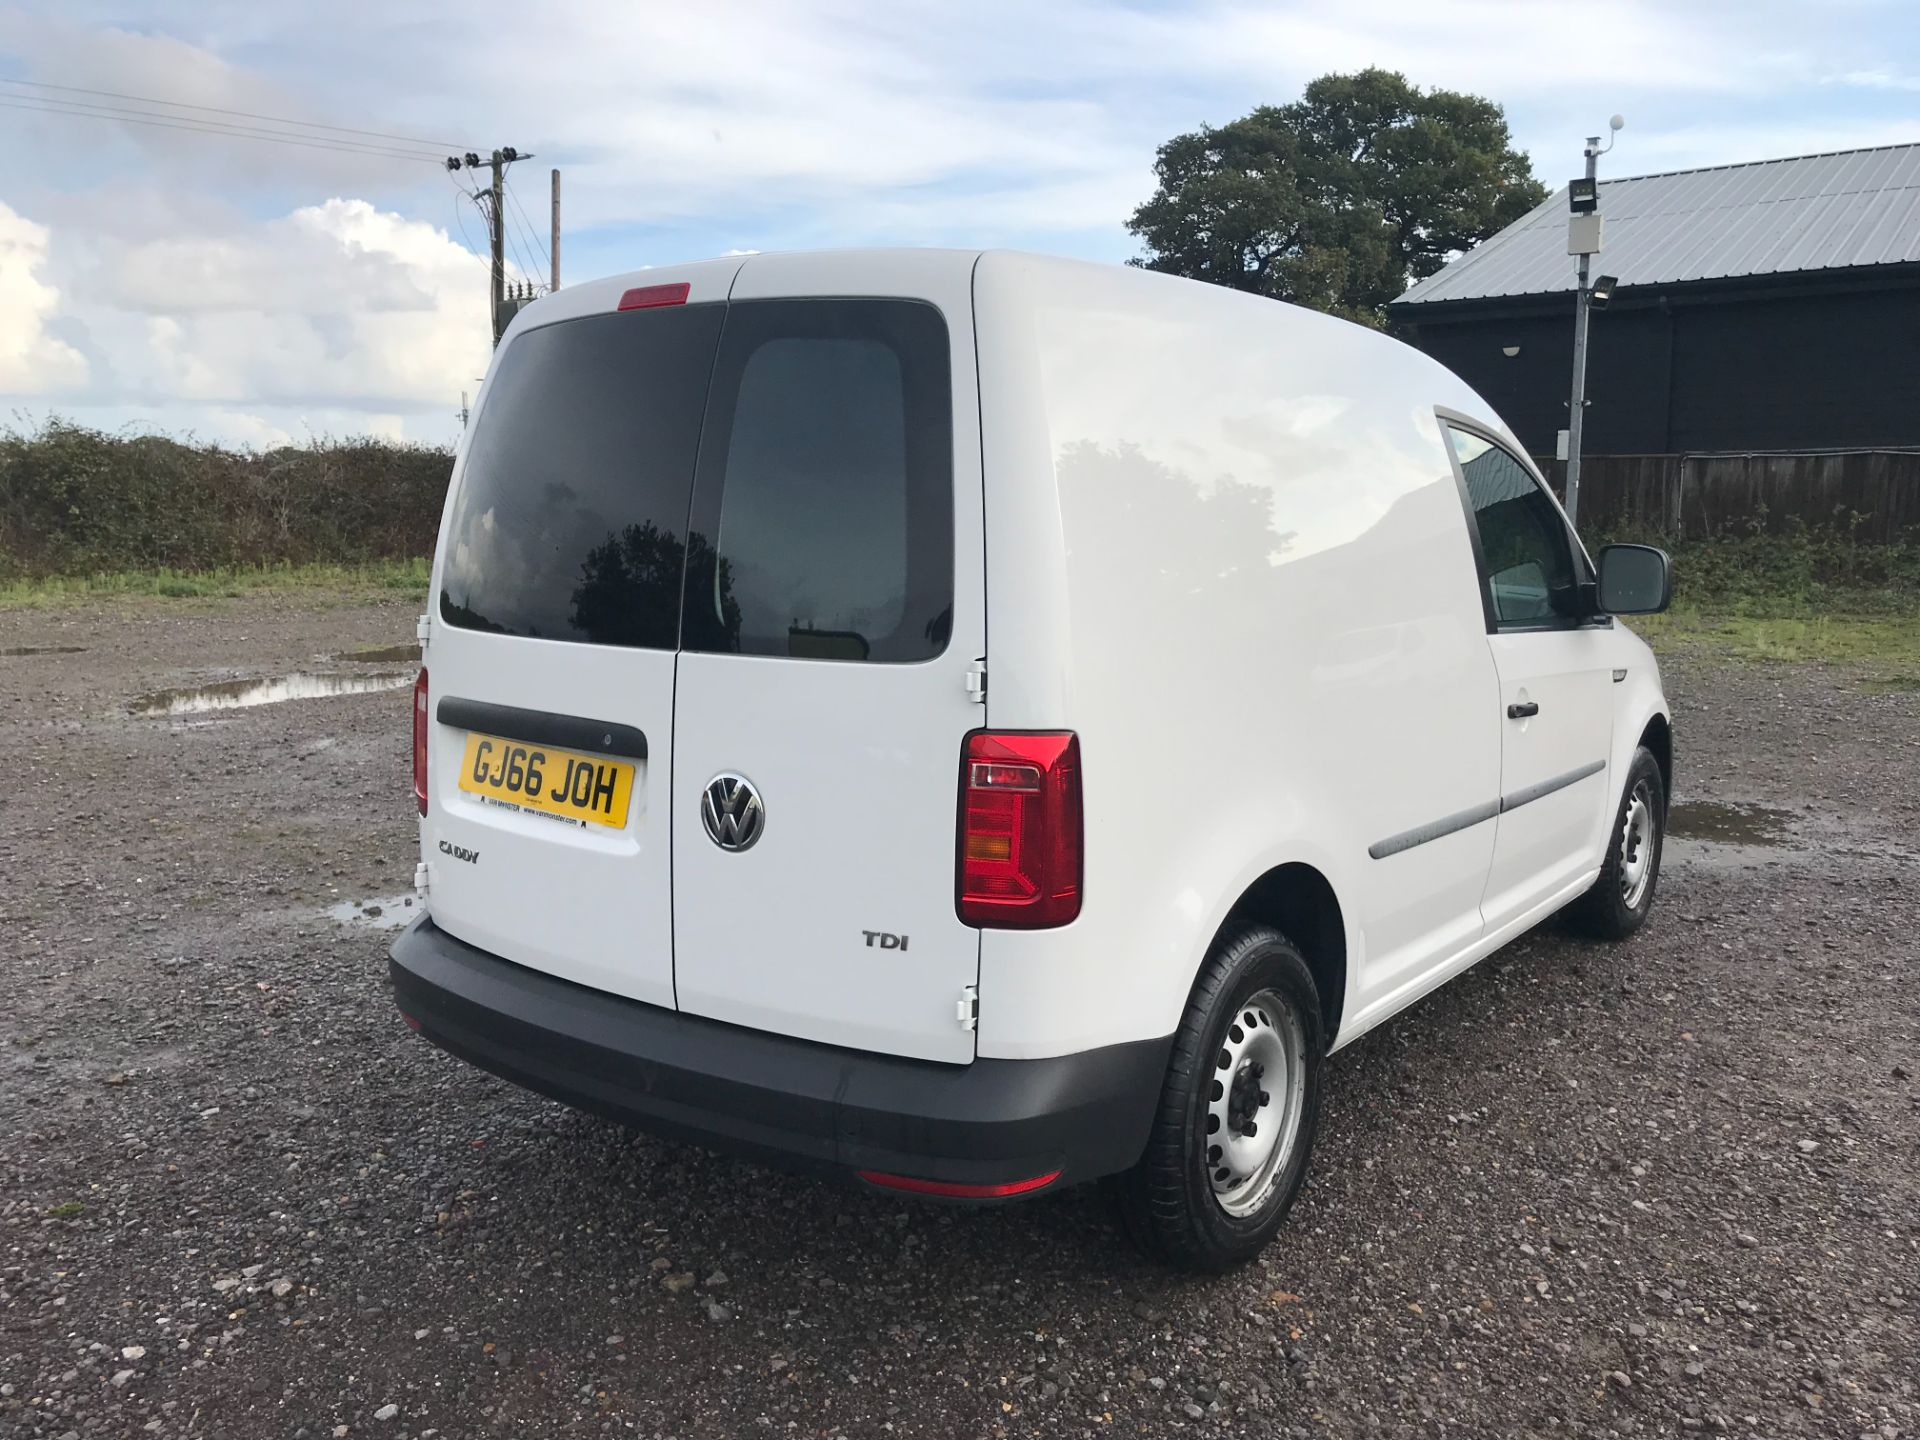 2016 Volkswagen Caddy 2.0 Tdi Bluemotion Tech 102Ps Startline Van (GJ66JOH) Image 4